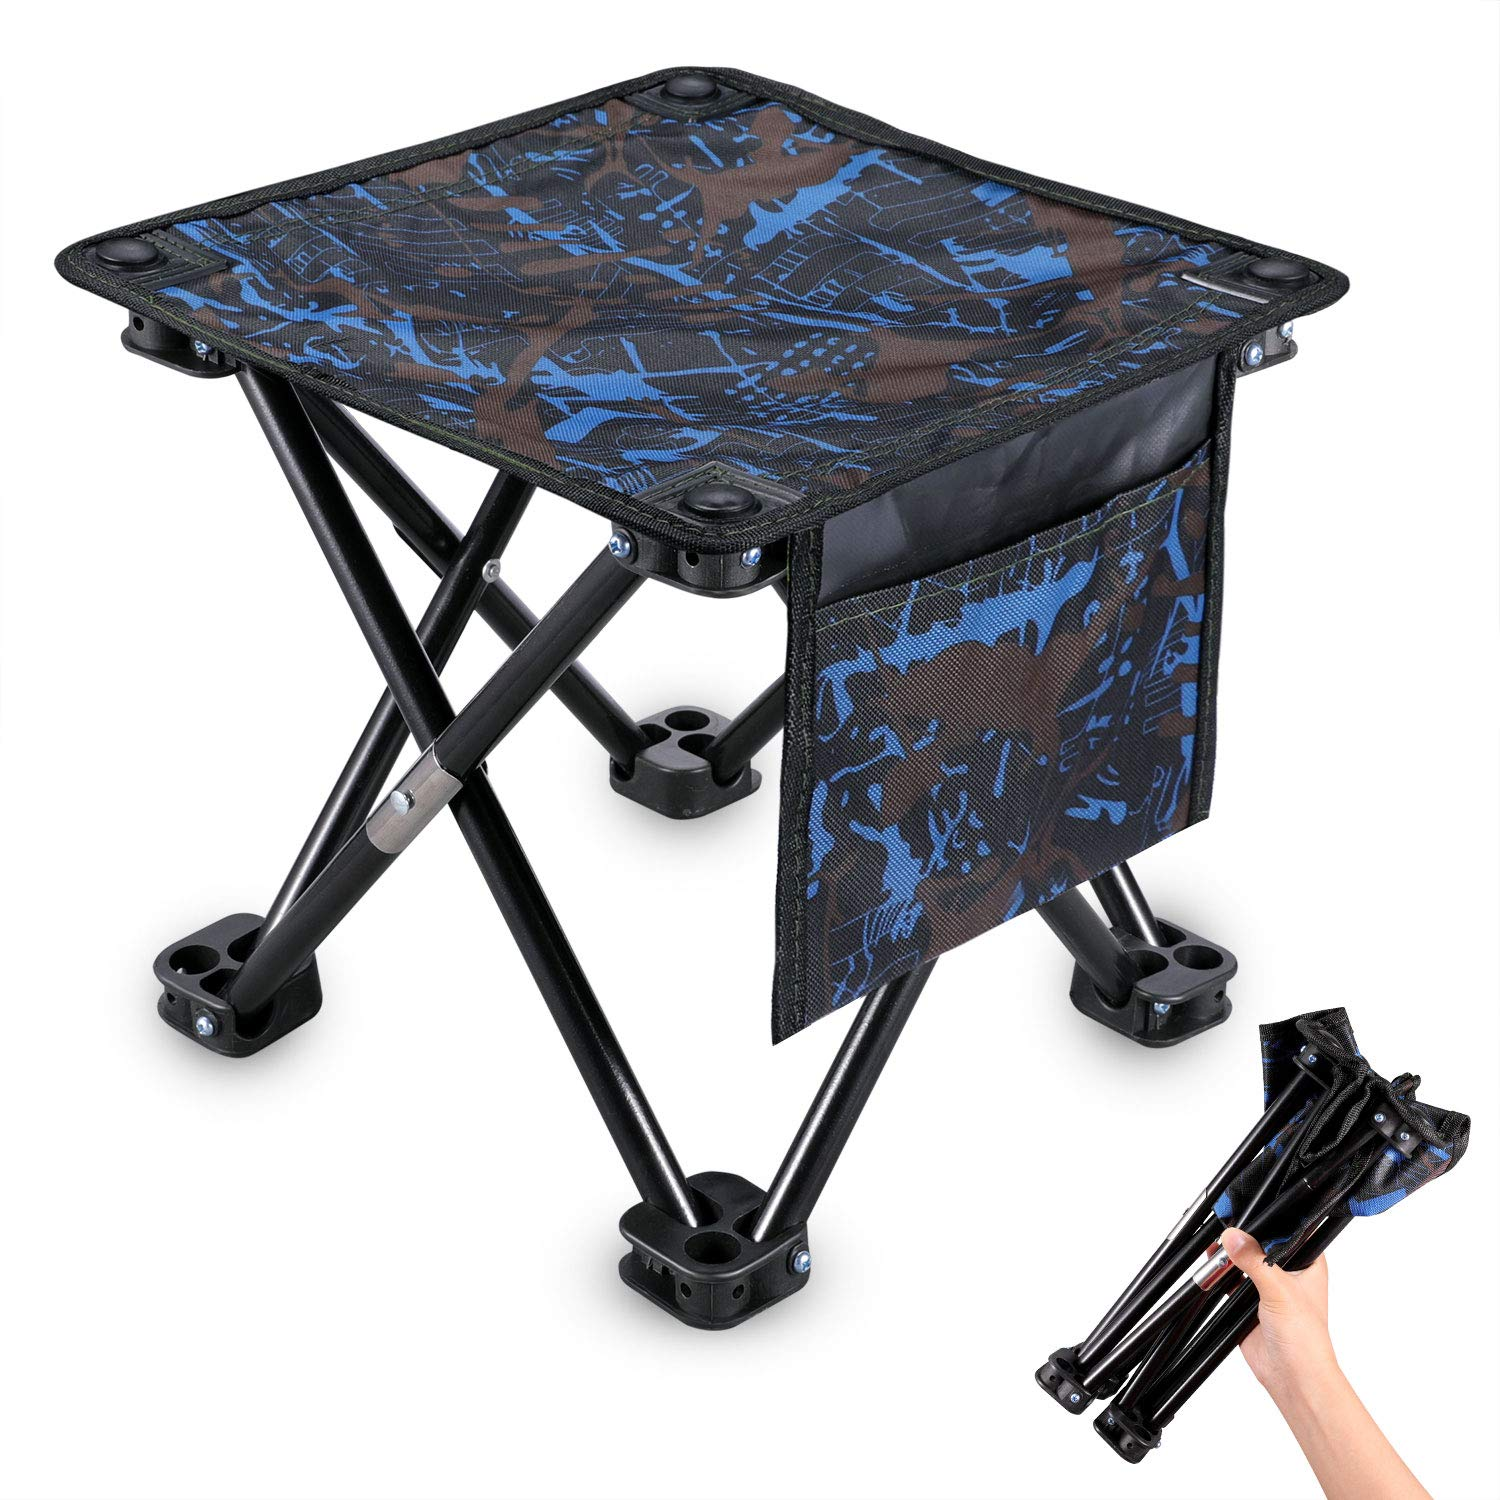 KUYOU Folding Camping Stool, Portable Outdoor Mini Chair Camping Small Seat Barbeque Stool Hold up to 220 lbs for Fishing BBQ Hiking Gardening and Beach, Travel (Blue, L(13.5'')) by KUYOU